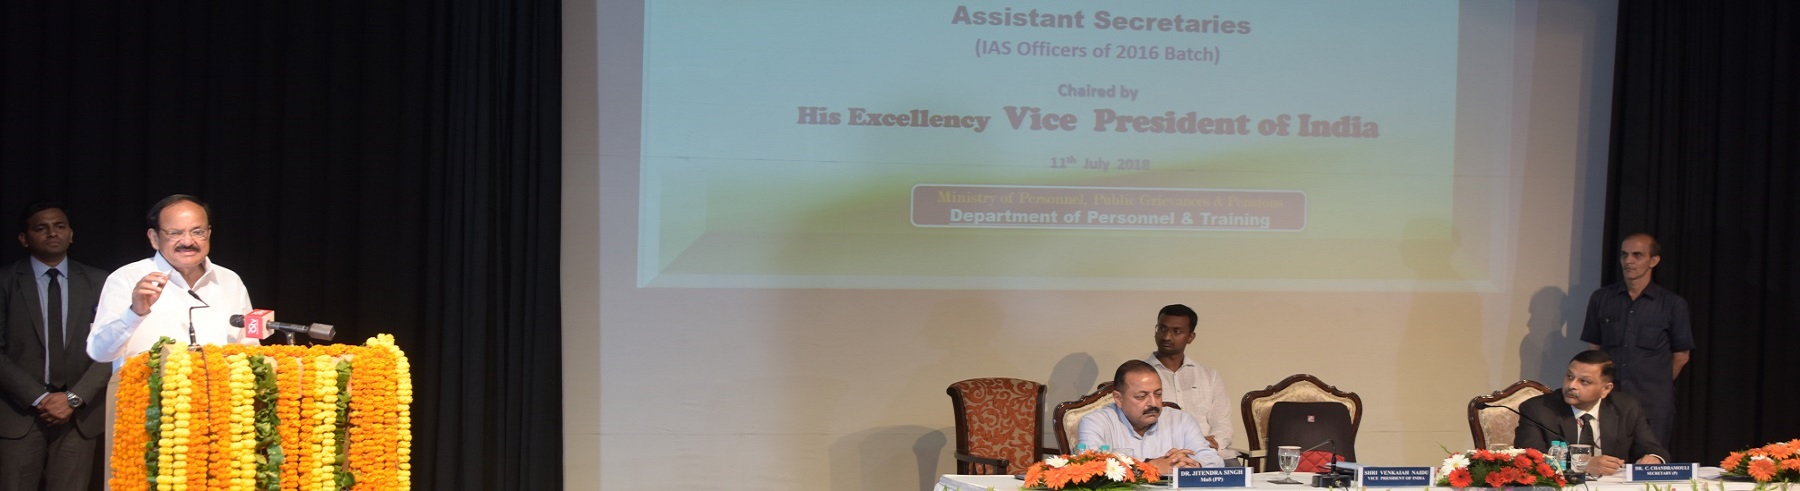 Interactive session with Assistant Secretaries (IAS officers of 2016 batch) was chaired by His Excellency Vice President of India